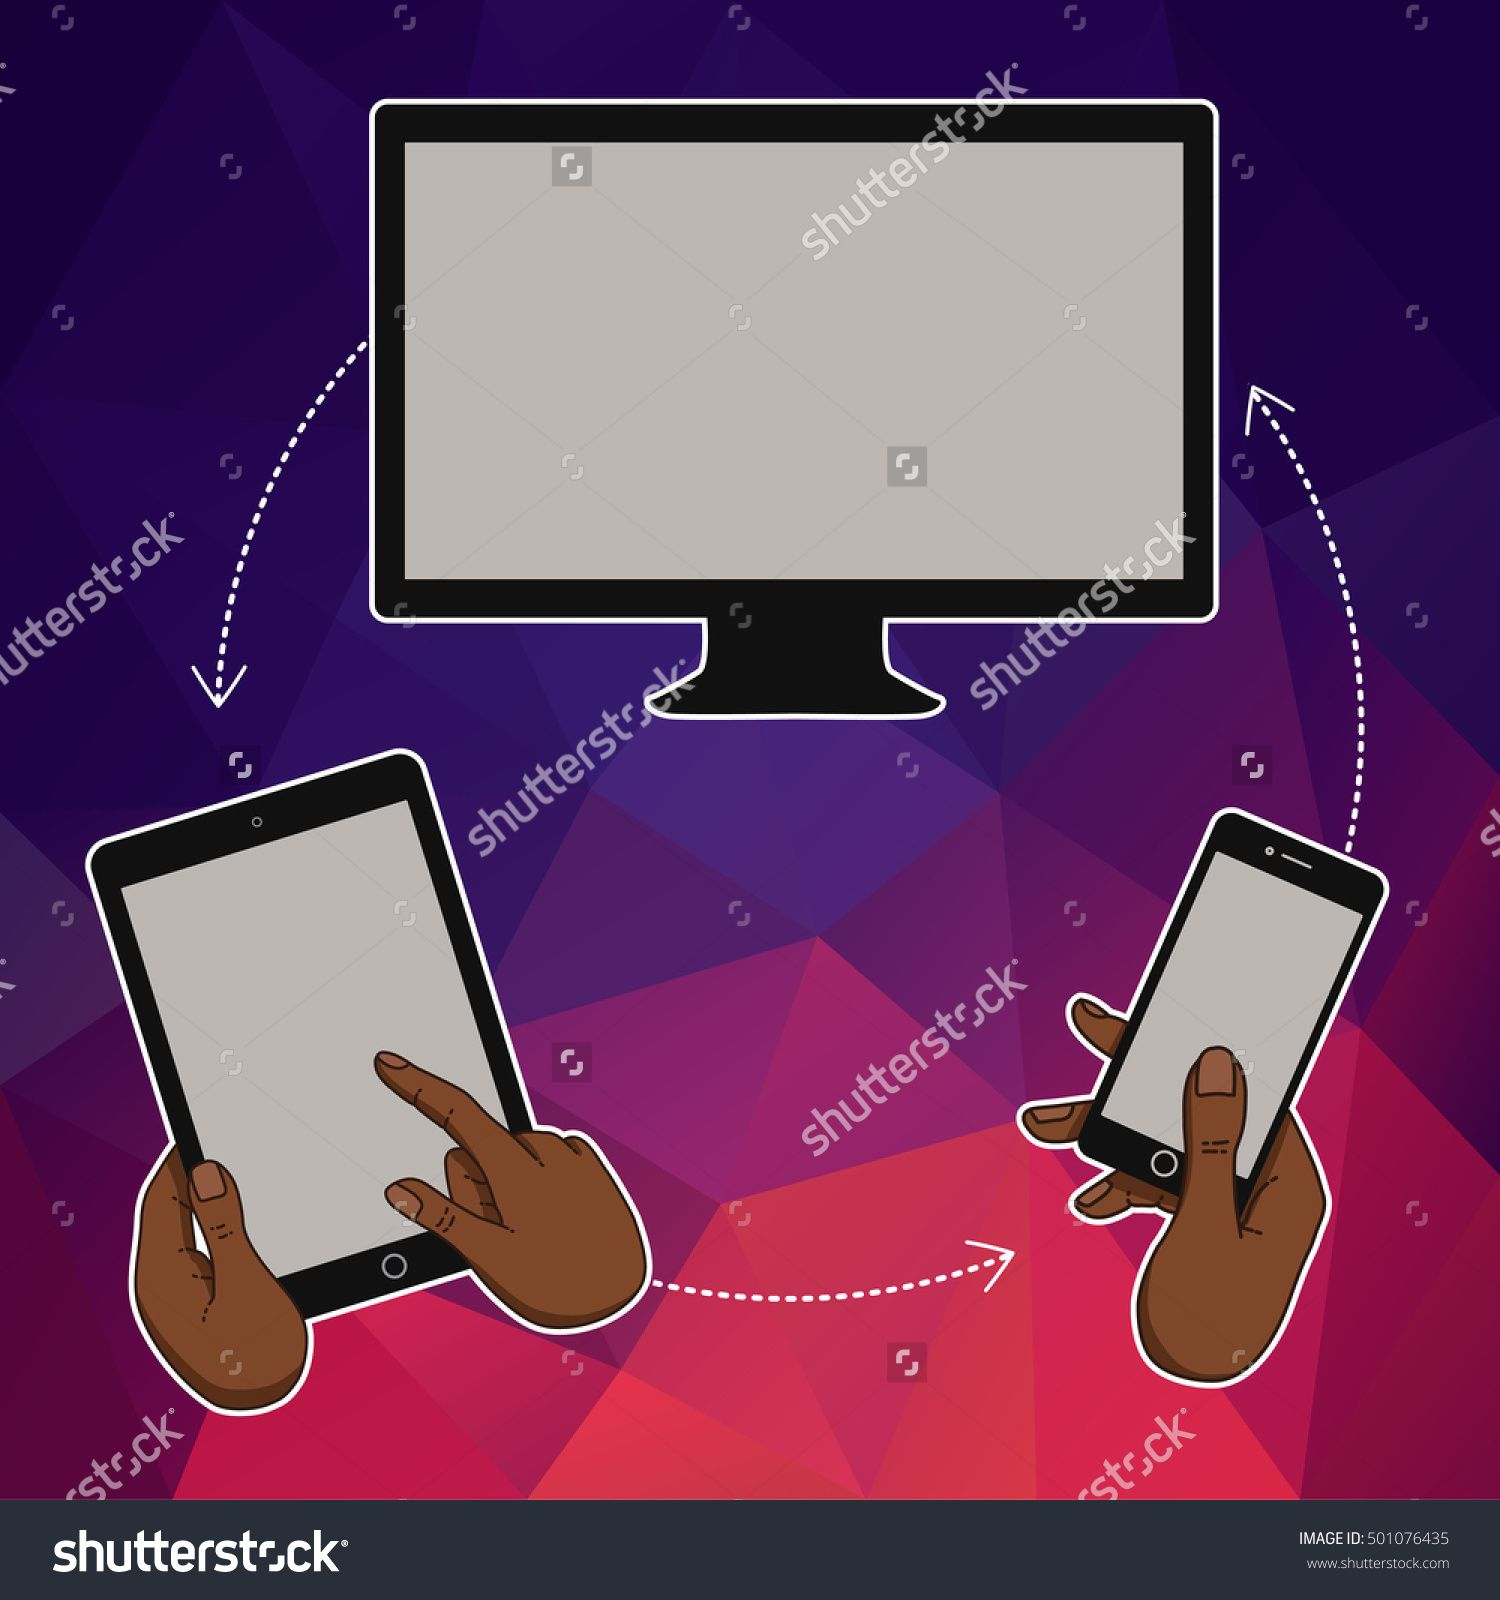 Hand Keeps Mobile Phone, Tablet. Internet Cloud Trends And Network In Mobile Smartphone. Vector Template Of Cloud Service And Technology Network. Mobile Phone And Tablet In Hands. Cloud Technologic - 501076435 : Shutterstock